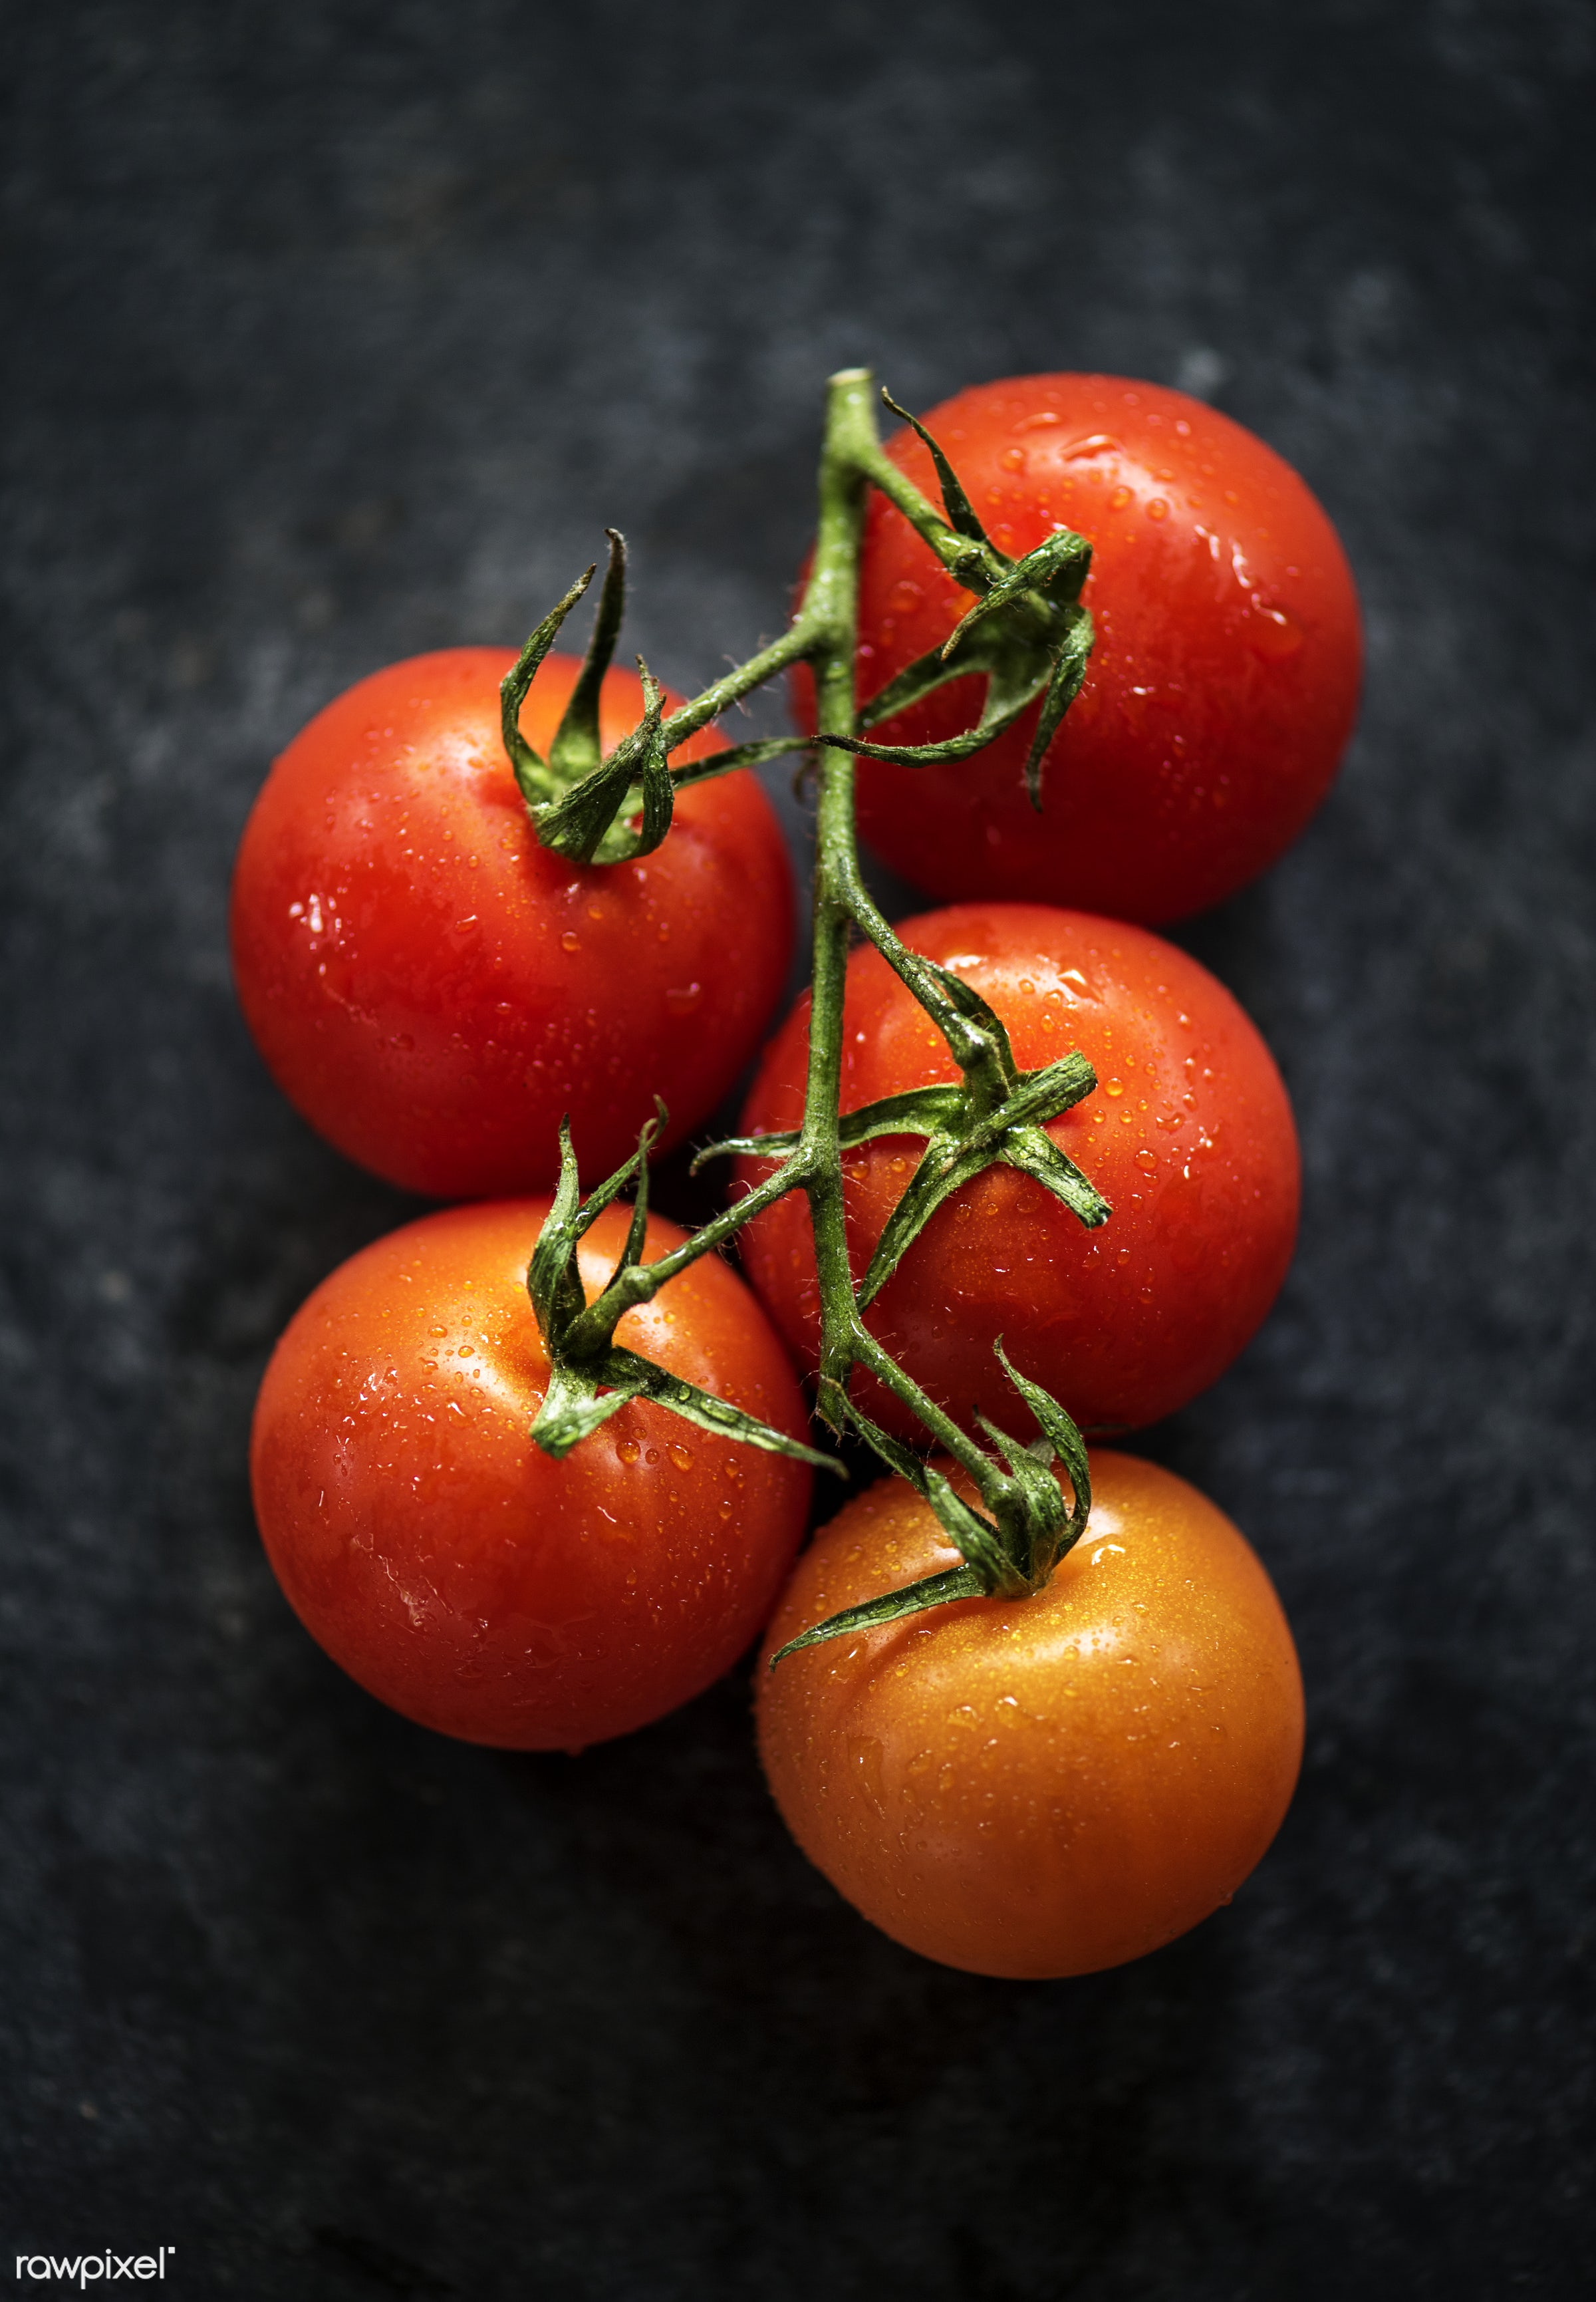 raw, plant, nobody, tomato, black background, real, organic, red, nature, fresh, food, background, ripe, cultivated,...